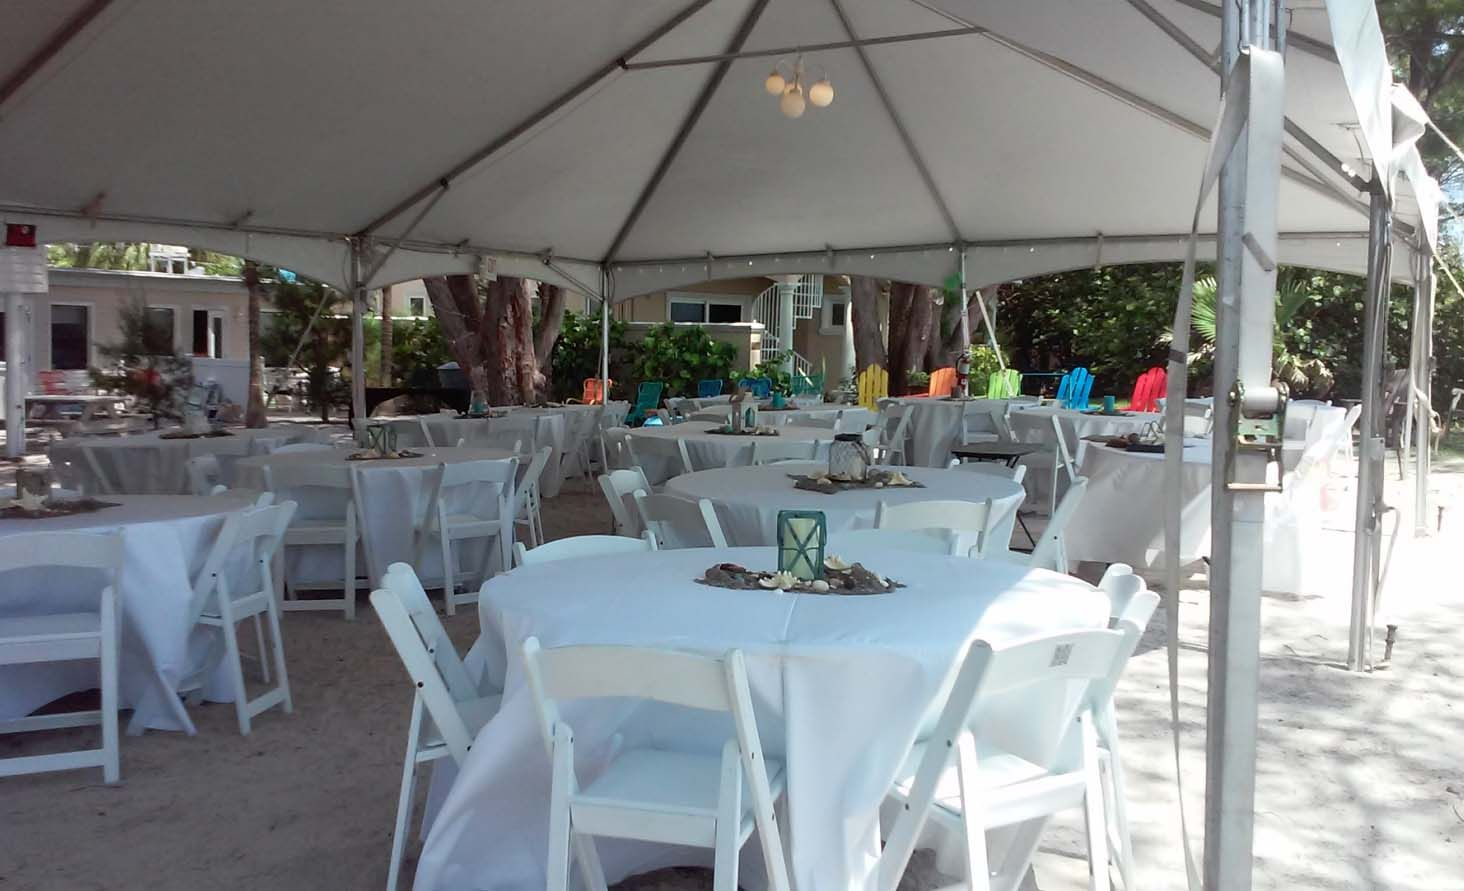 Beach Wedding Reception Style With A Tent To Keep Cool In The